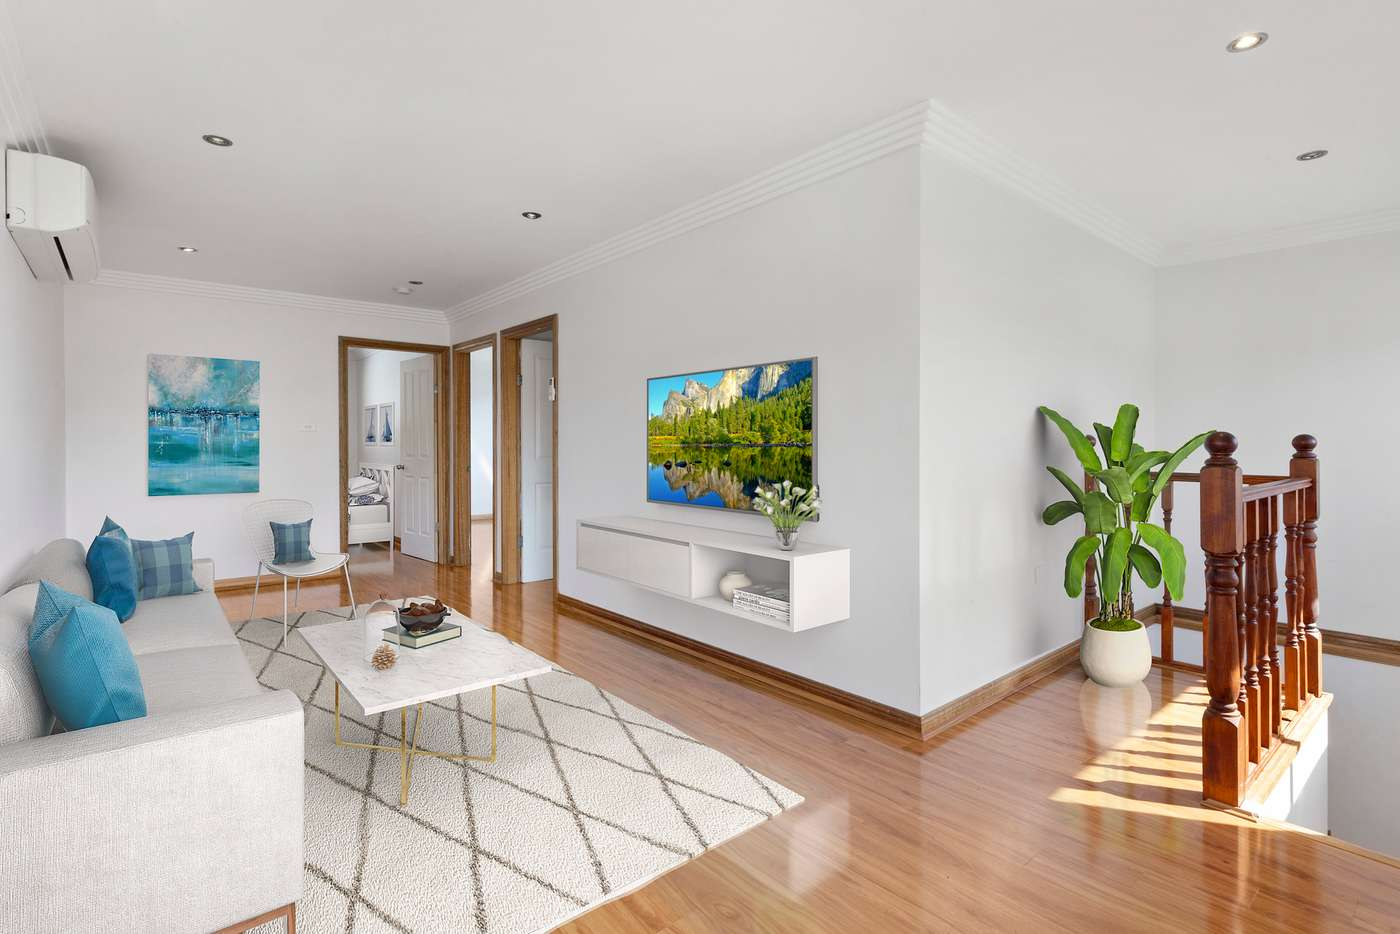 Fifth view of Homely house listing, 40 Carr Street, Towradgi NSW 2518